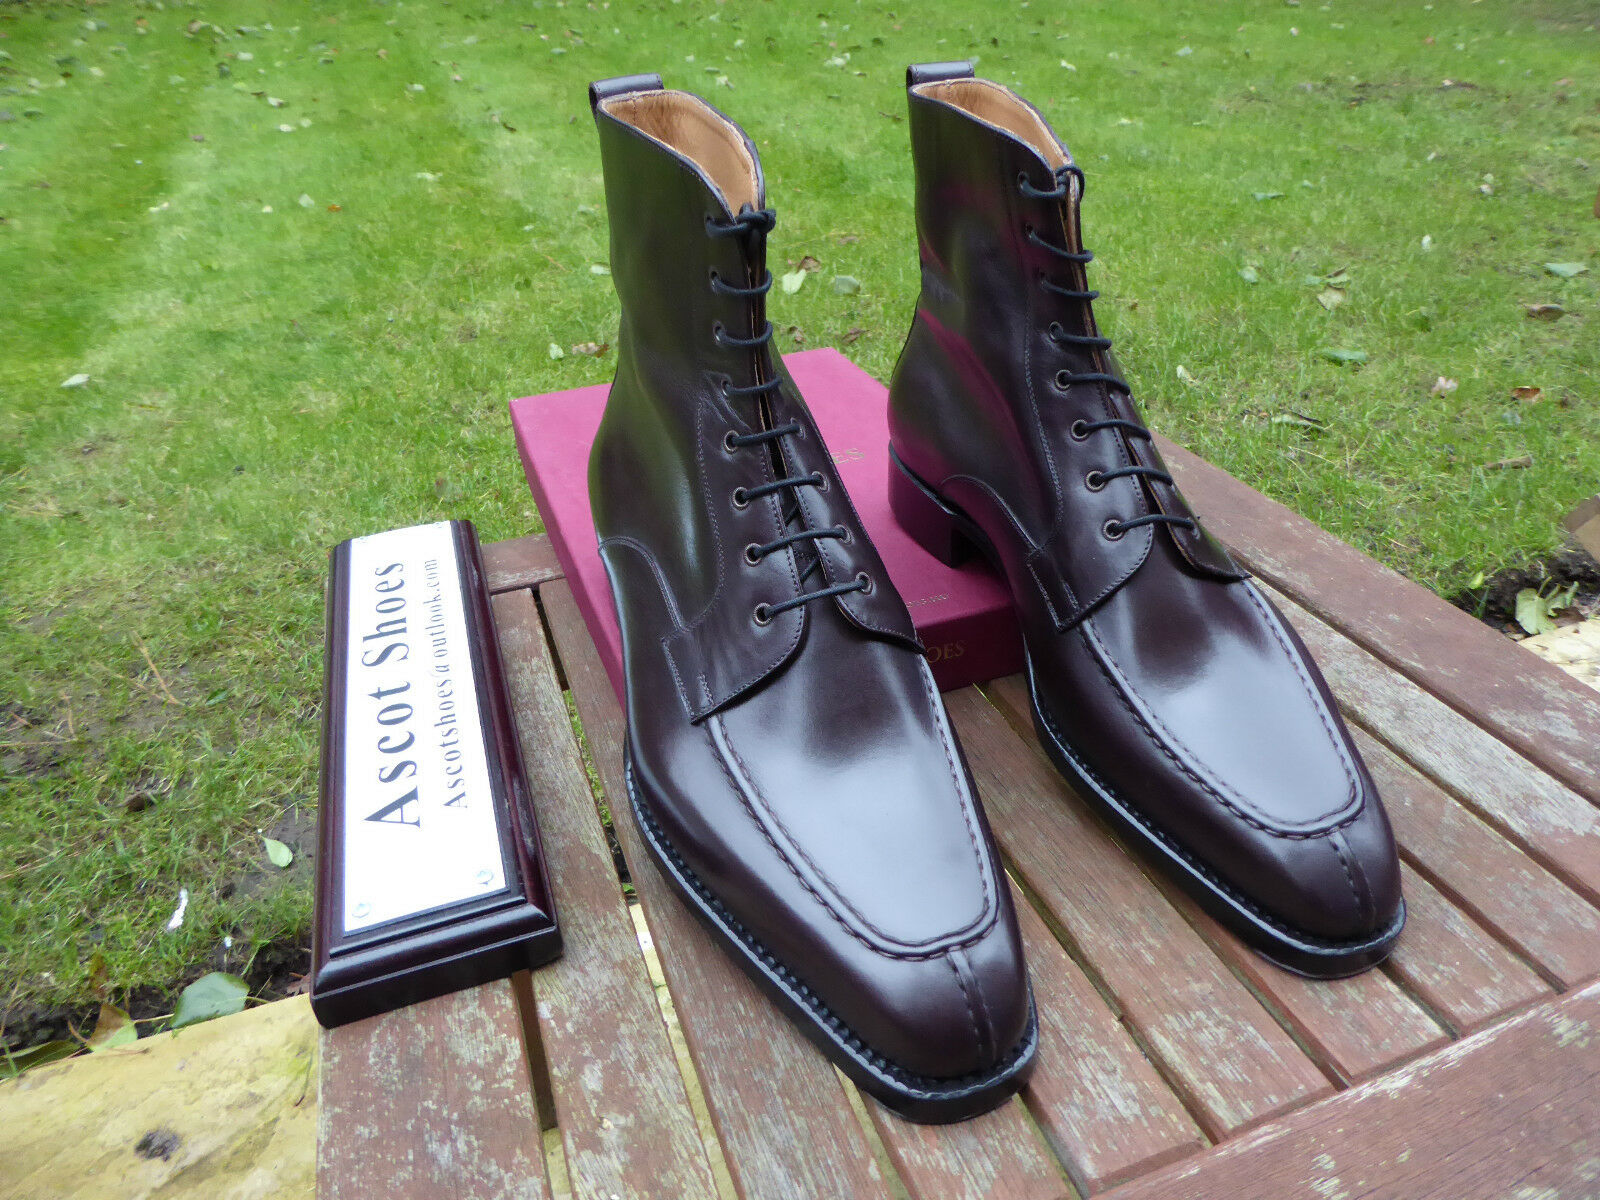 Scarpe casual da uomo  Vt727-Vass NORWEGER derby boots-Oxblood VITELLO-UE 42-US 9 D-U ultimo